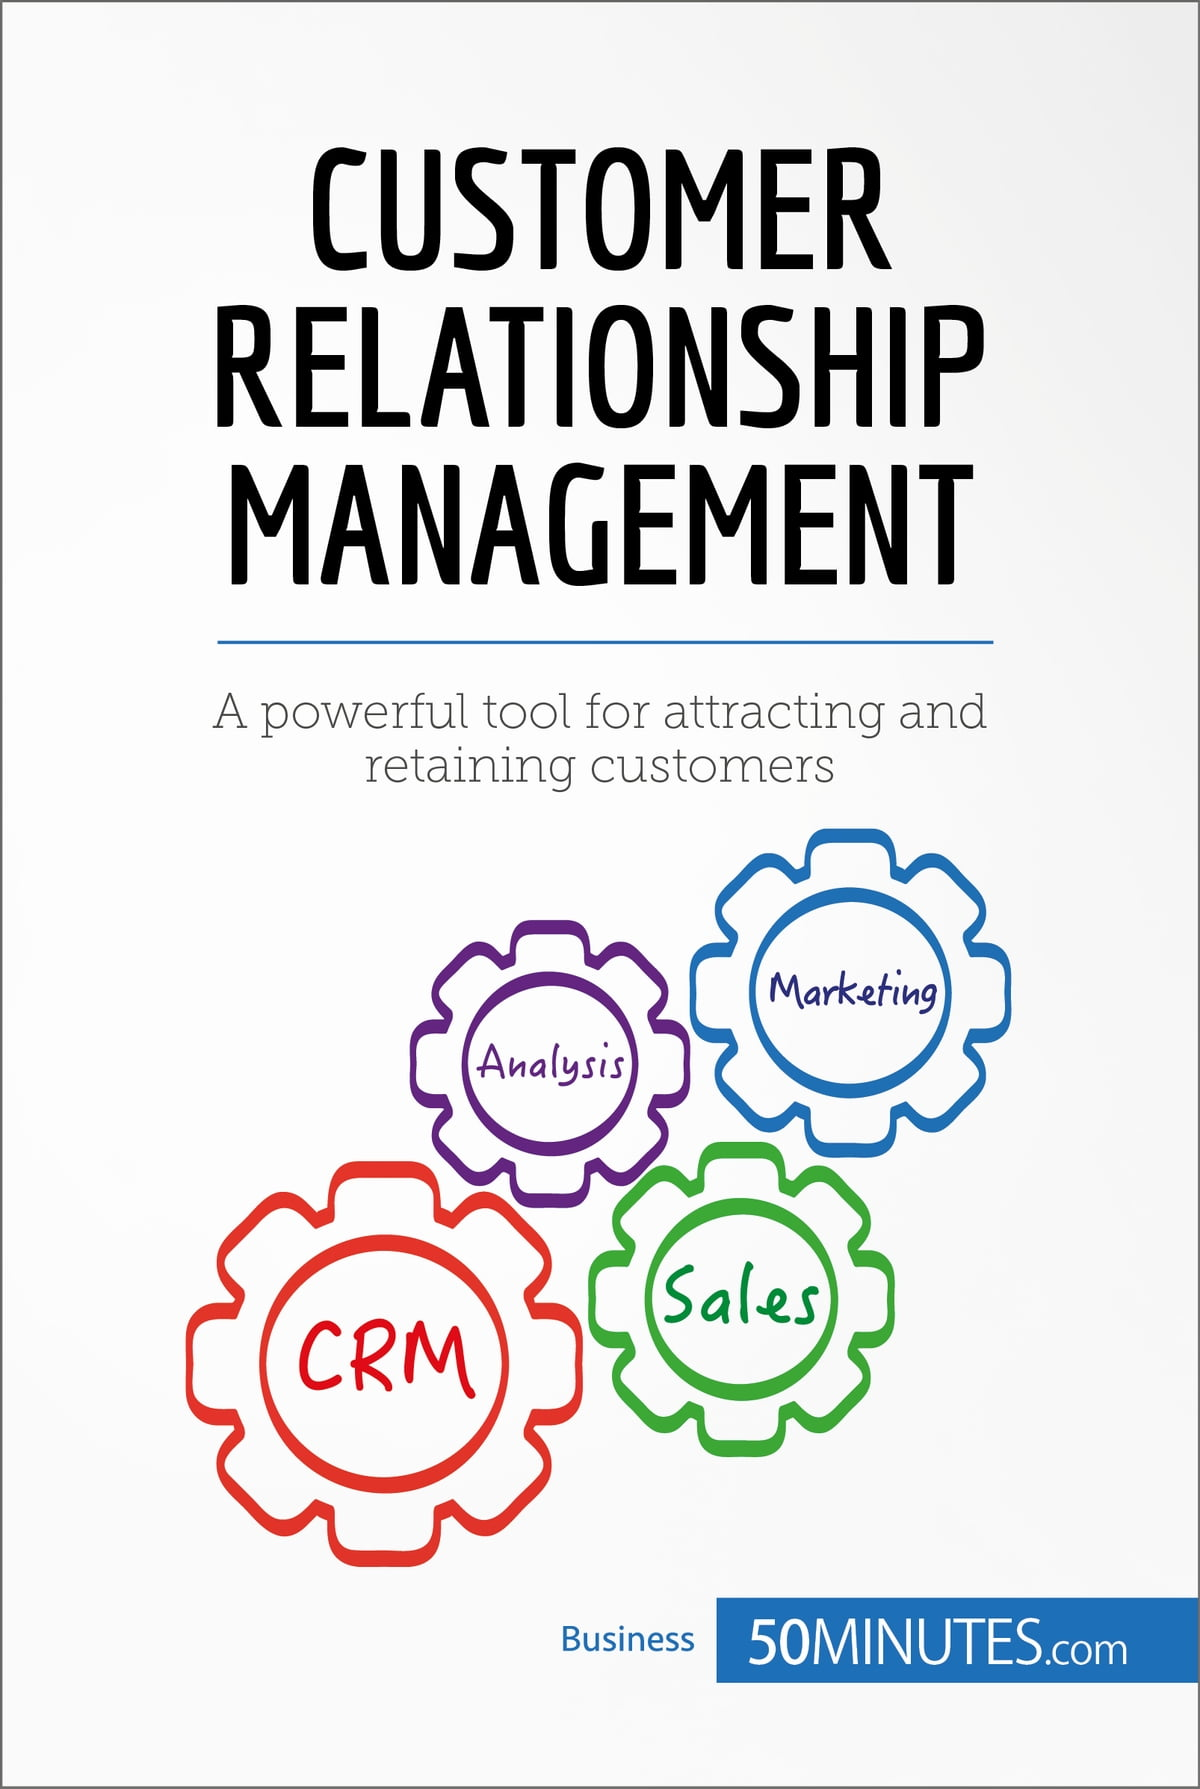 Customer Relationship Management eBook by 50MINUTES.COM - 97